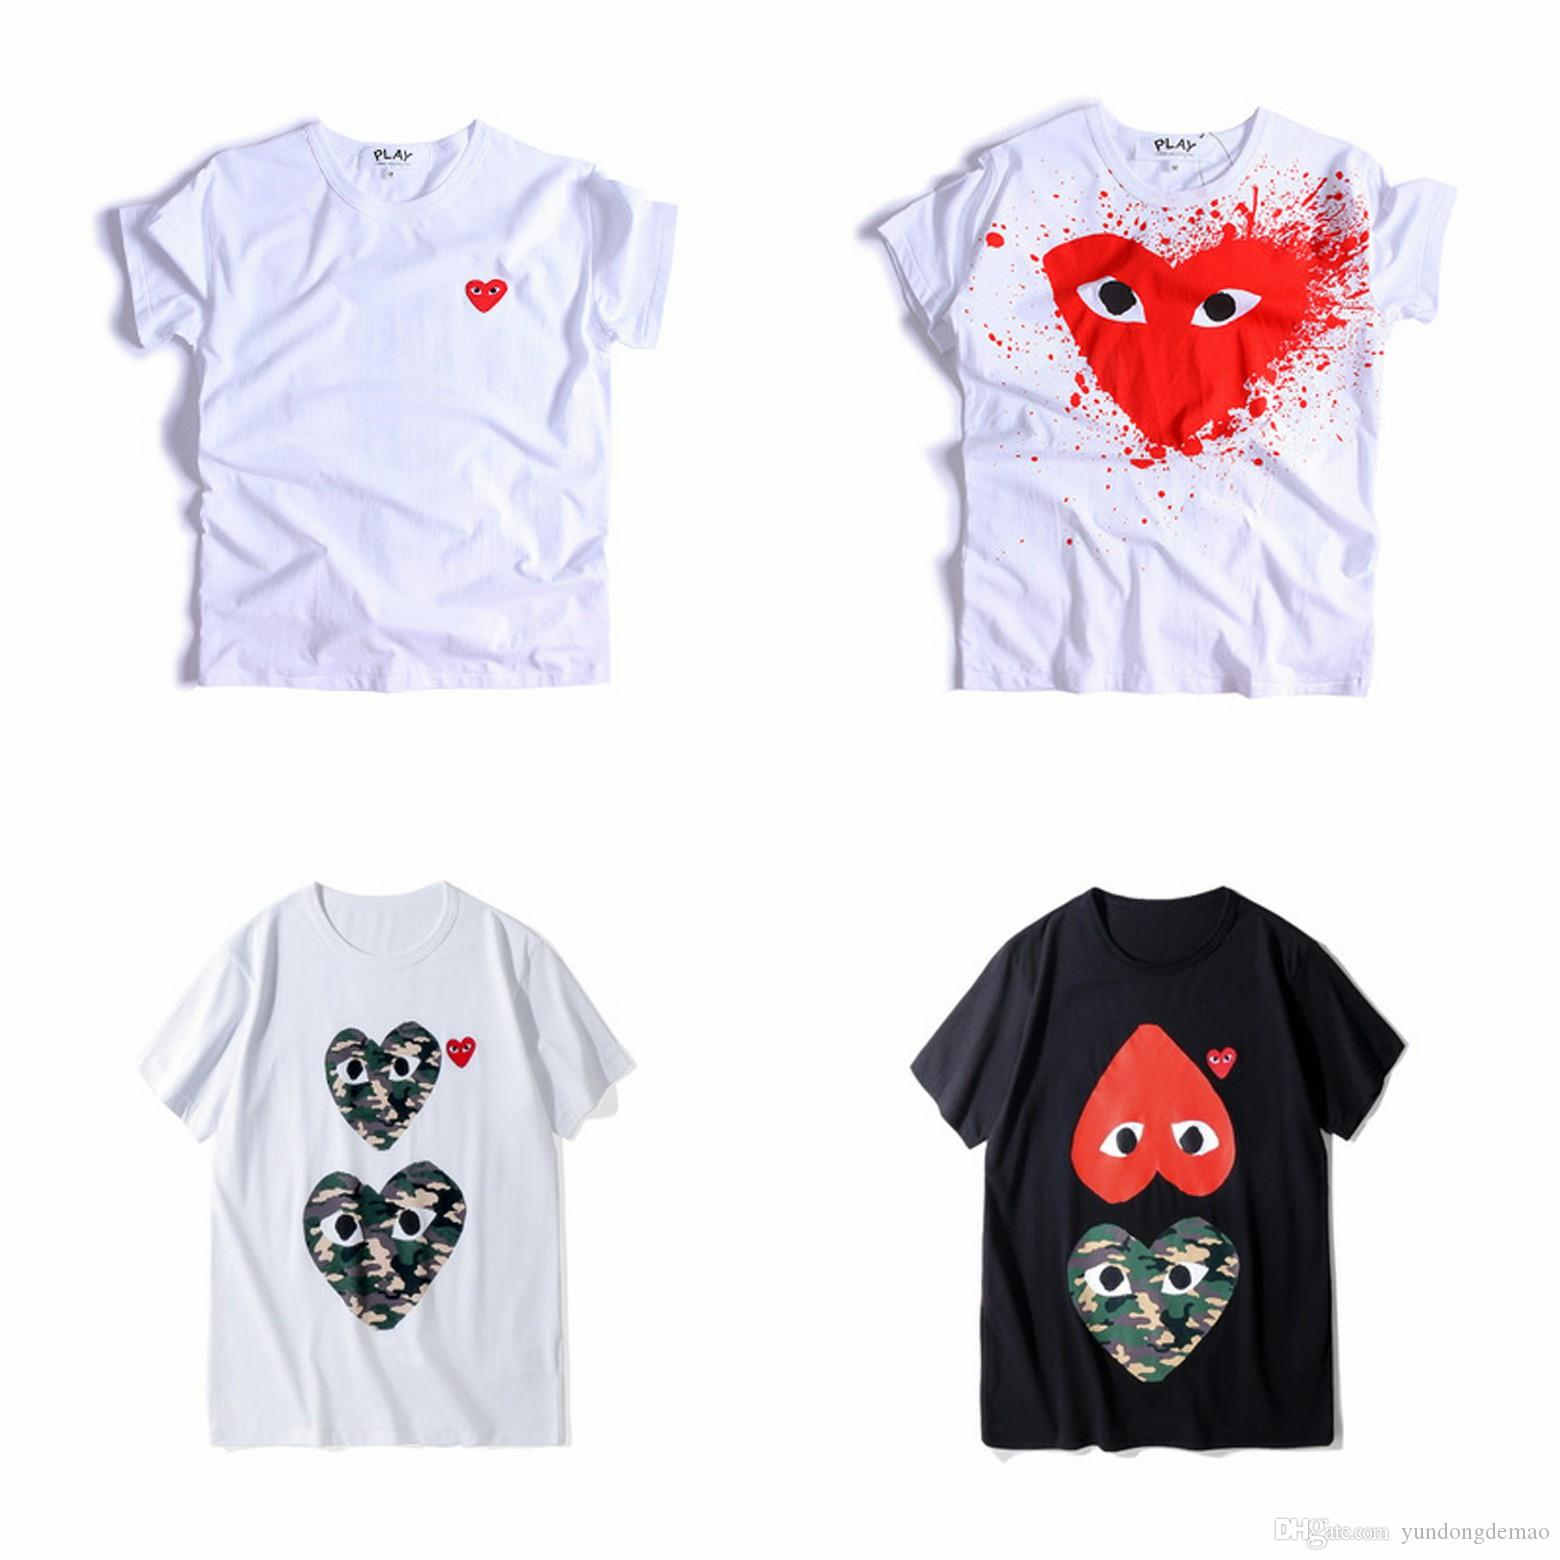 Lover COM Best Quality Men Women CommeS Grey DES play GARCONS CDG Embroidered Double Heart short Sleeve T-shirts Embroidery Red Heart Tee